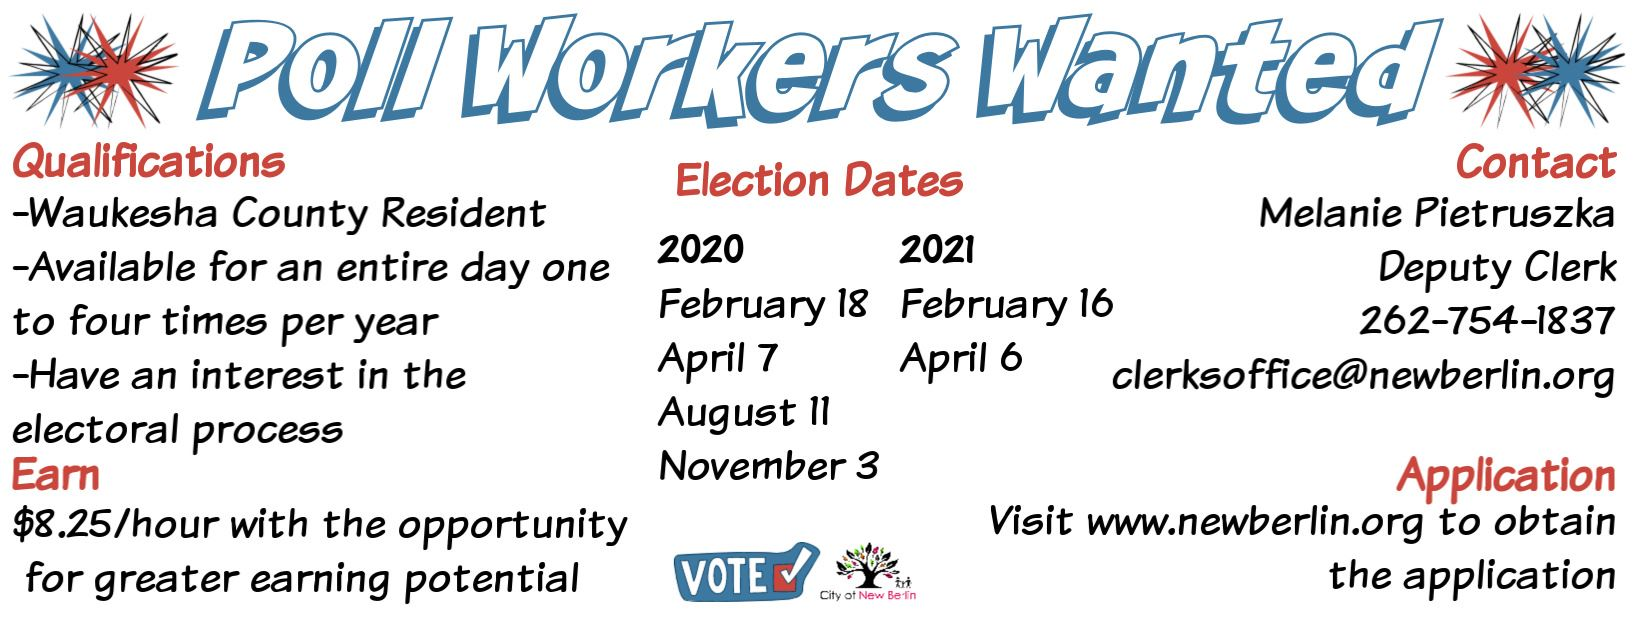 Poll workers wanted